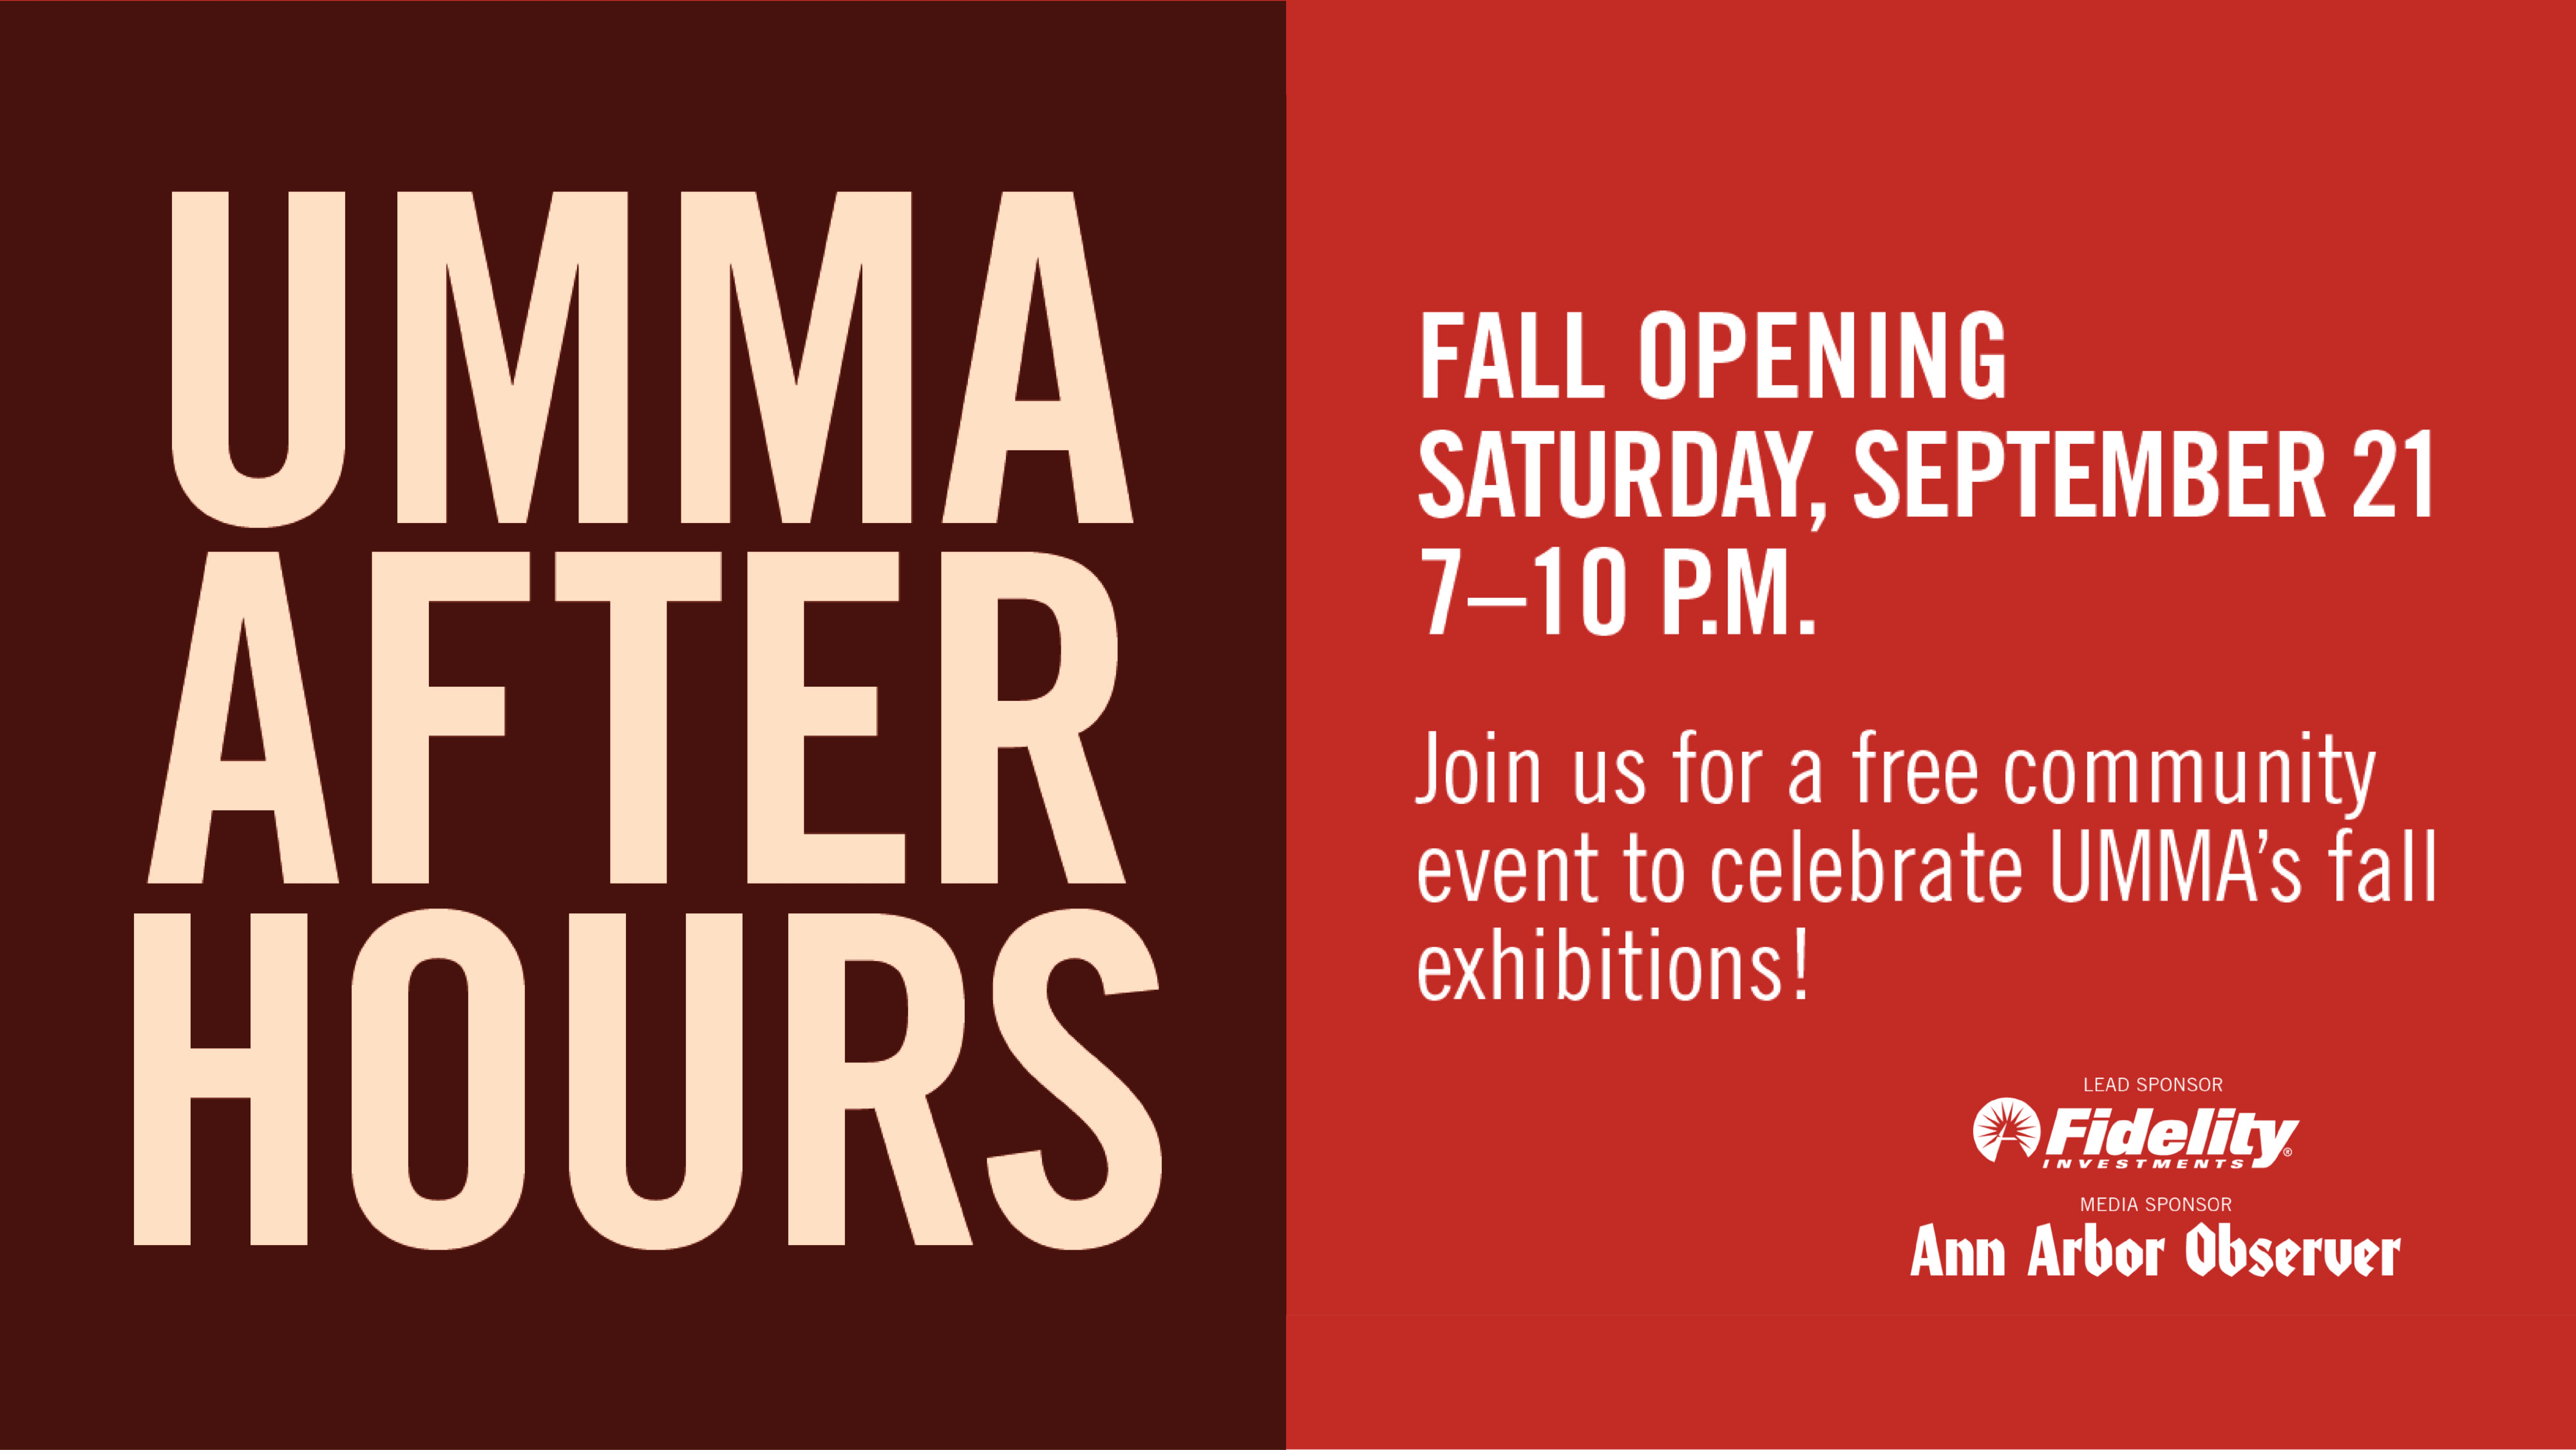 UMMA After Hours Fall Opening: Saturday, September 21, 7–10pm